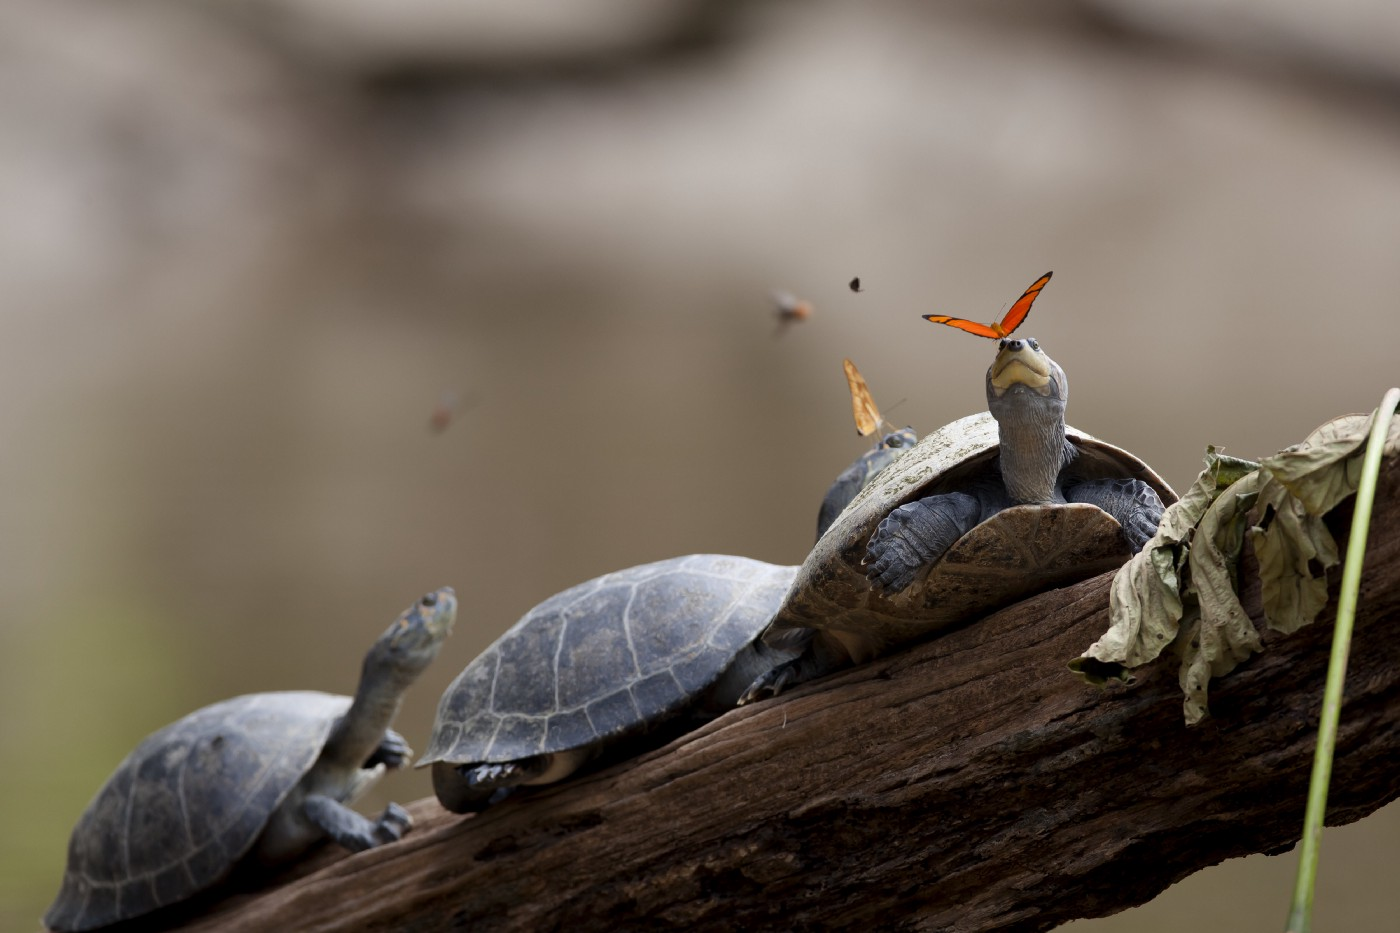 Butterflies feeding on the tears of turtles resting on a log in Ecuador